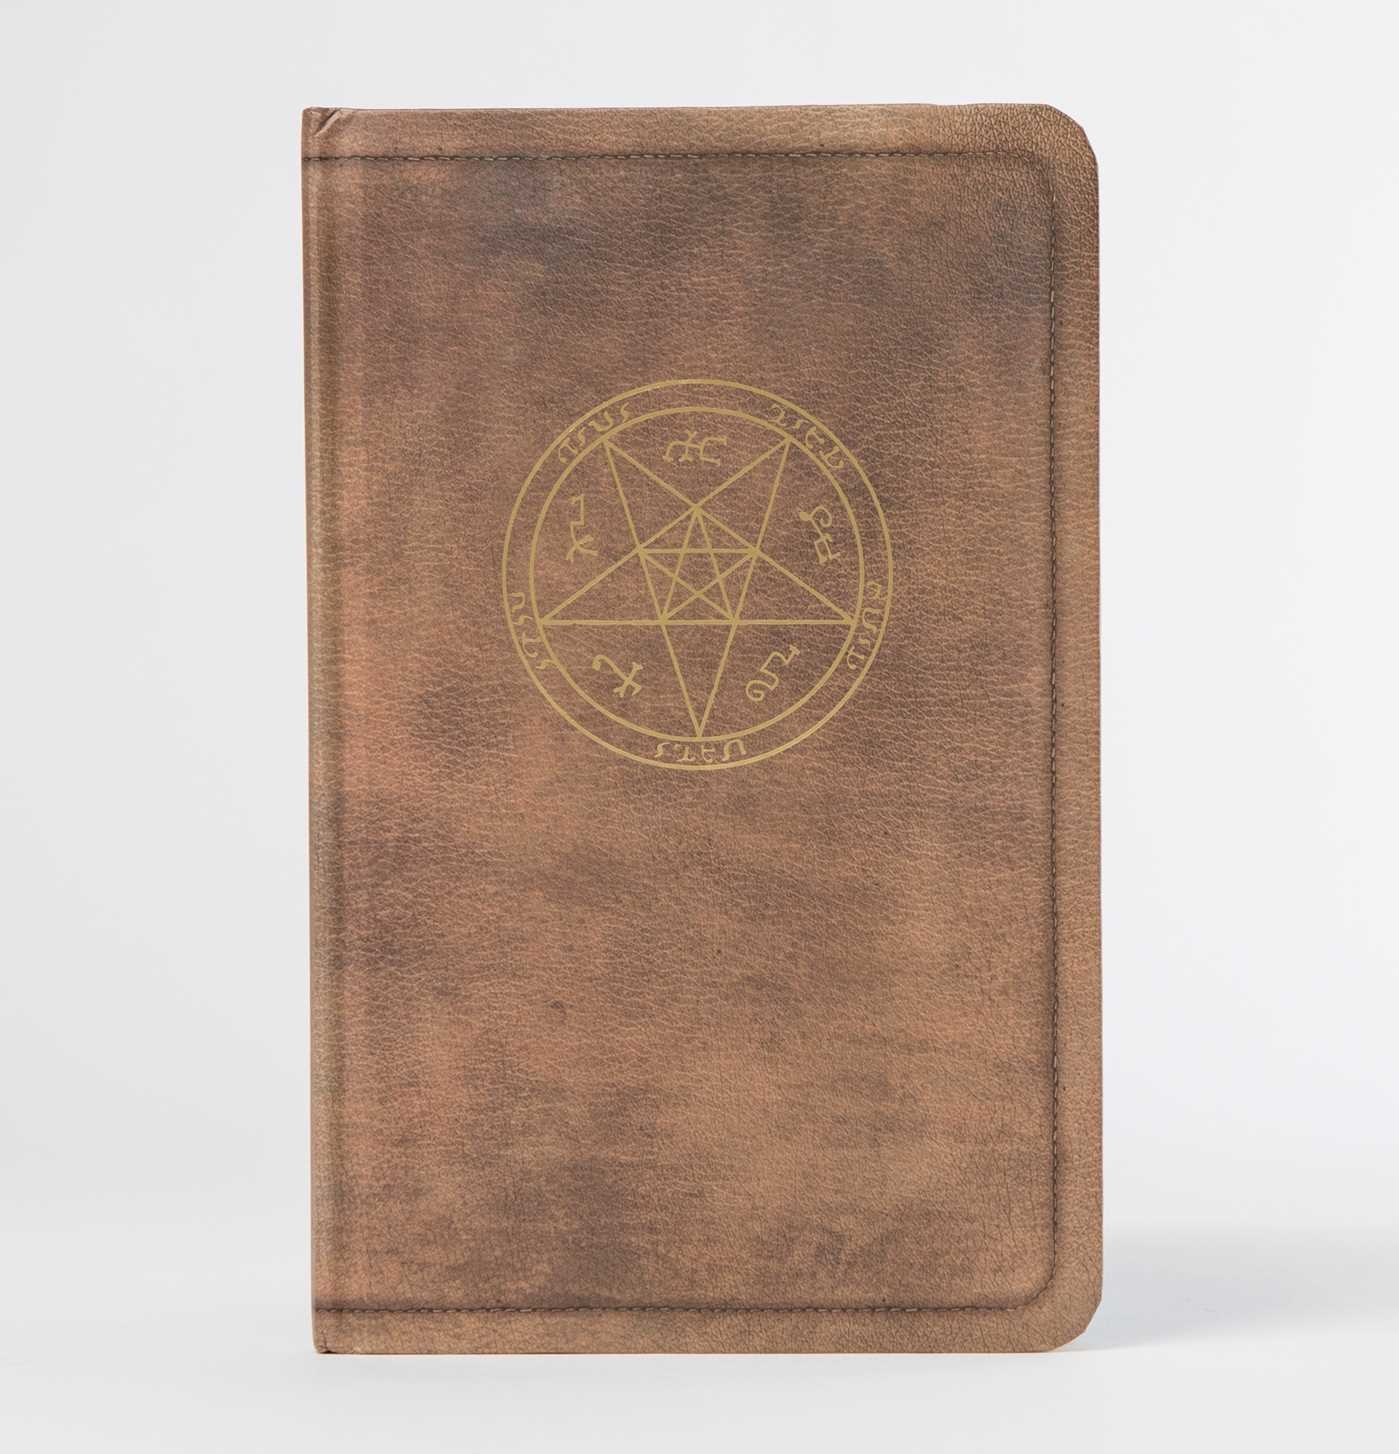 Supernatural john winchester hardcover ruled journal 9781683830740.in05